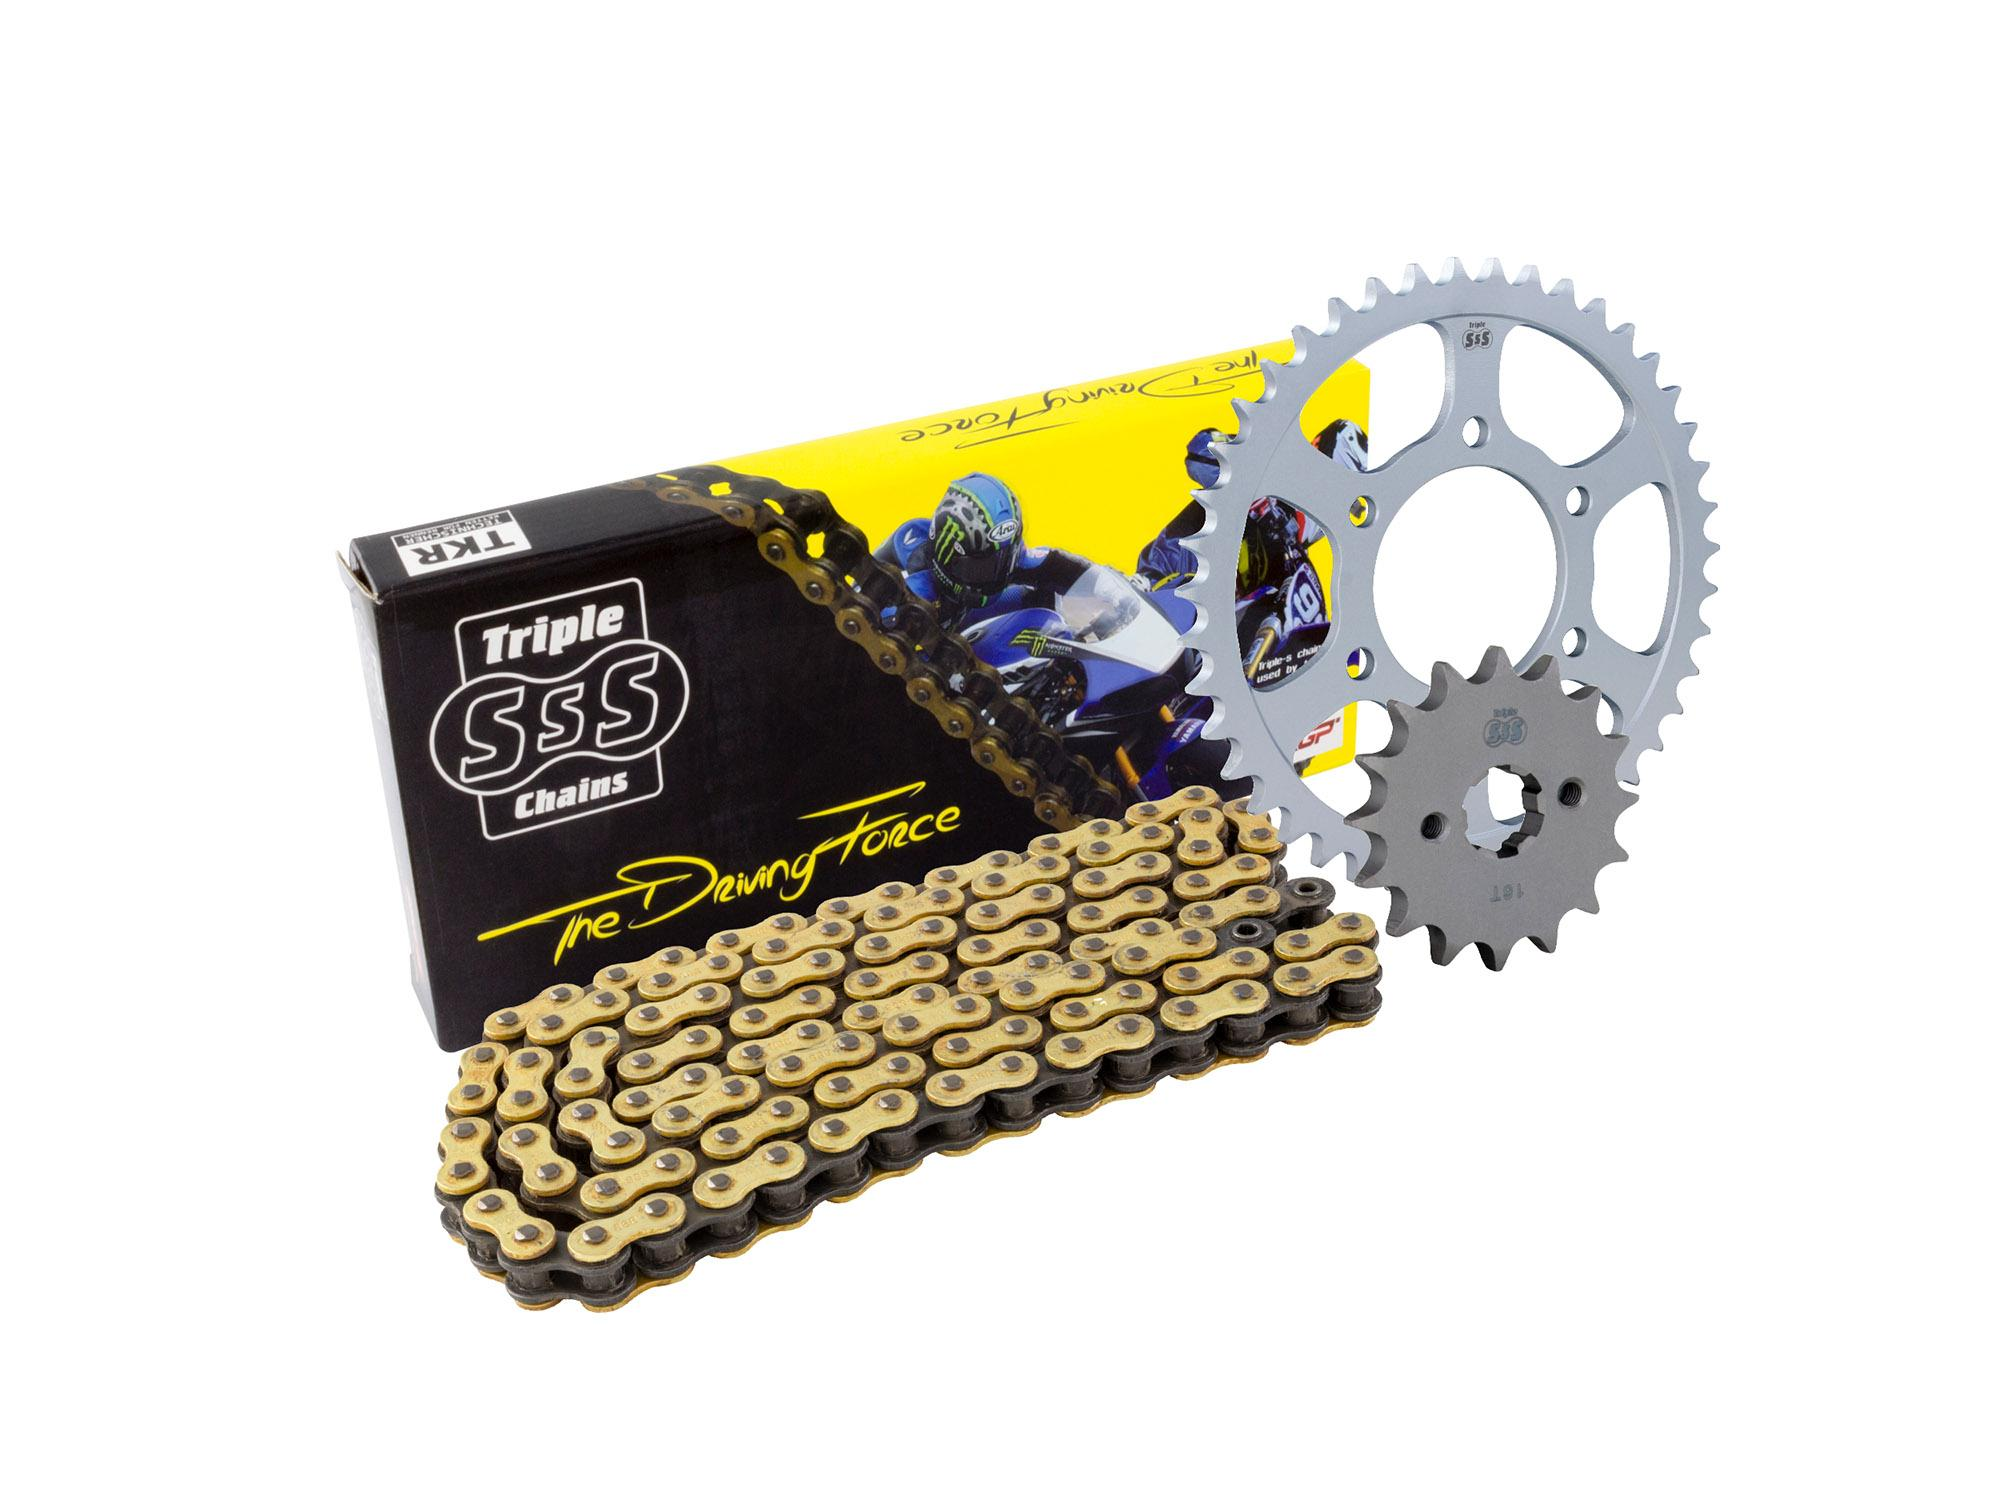 Kawasaki Z1000 A1-A3/A6F 03-06 Chain & Sprocket Kit: 16T Front, 42T Rear, HD O-Ring Gold Chain 525H 112Link